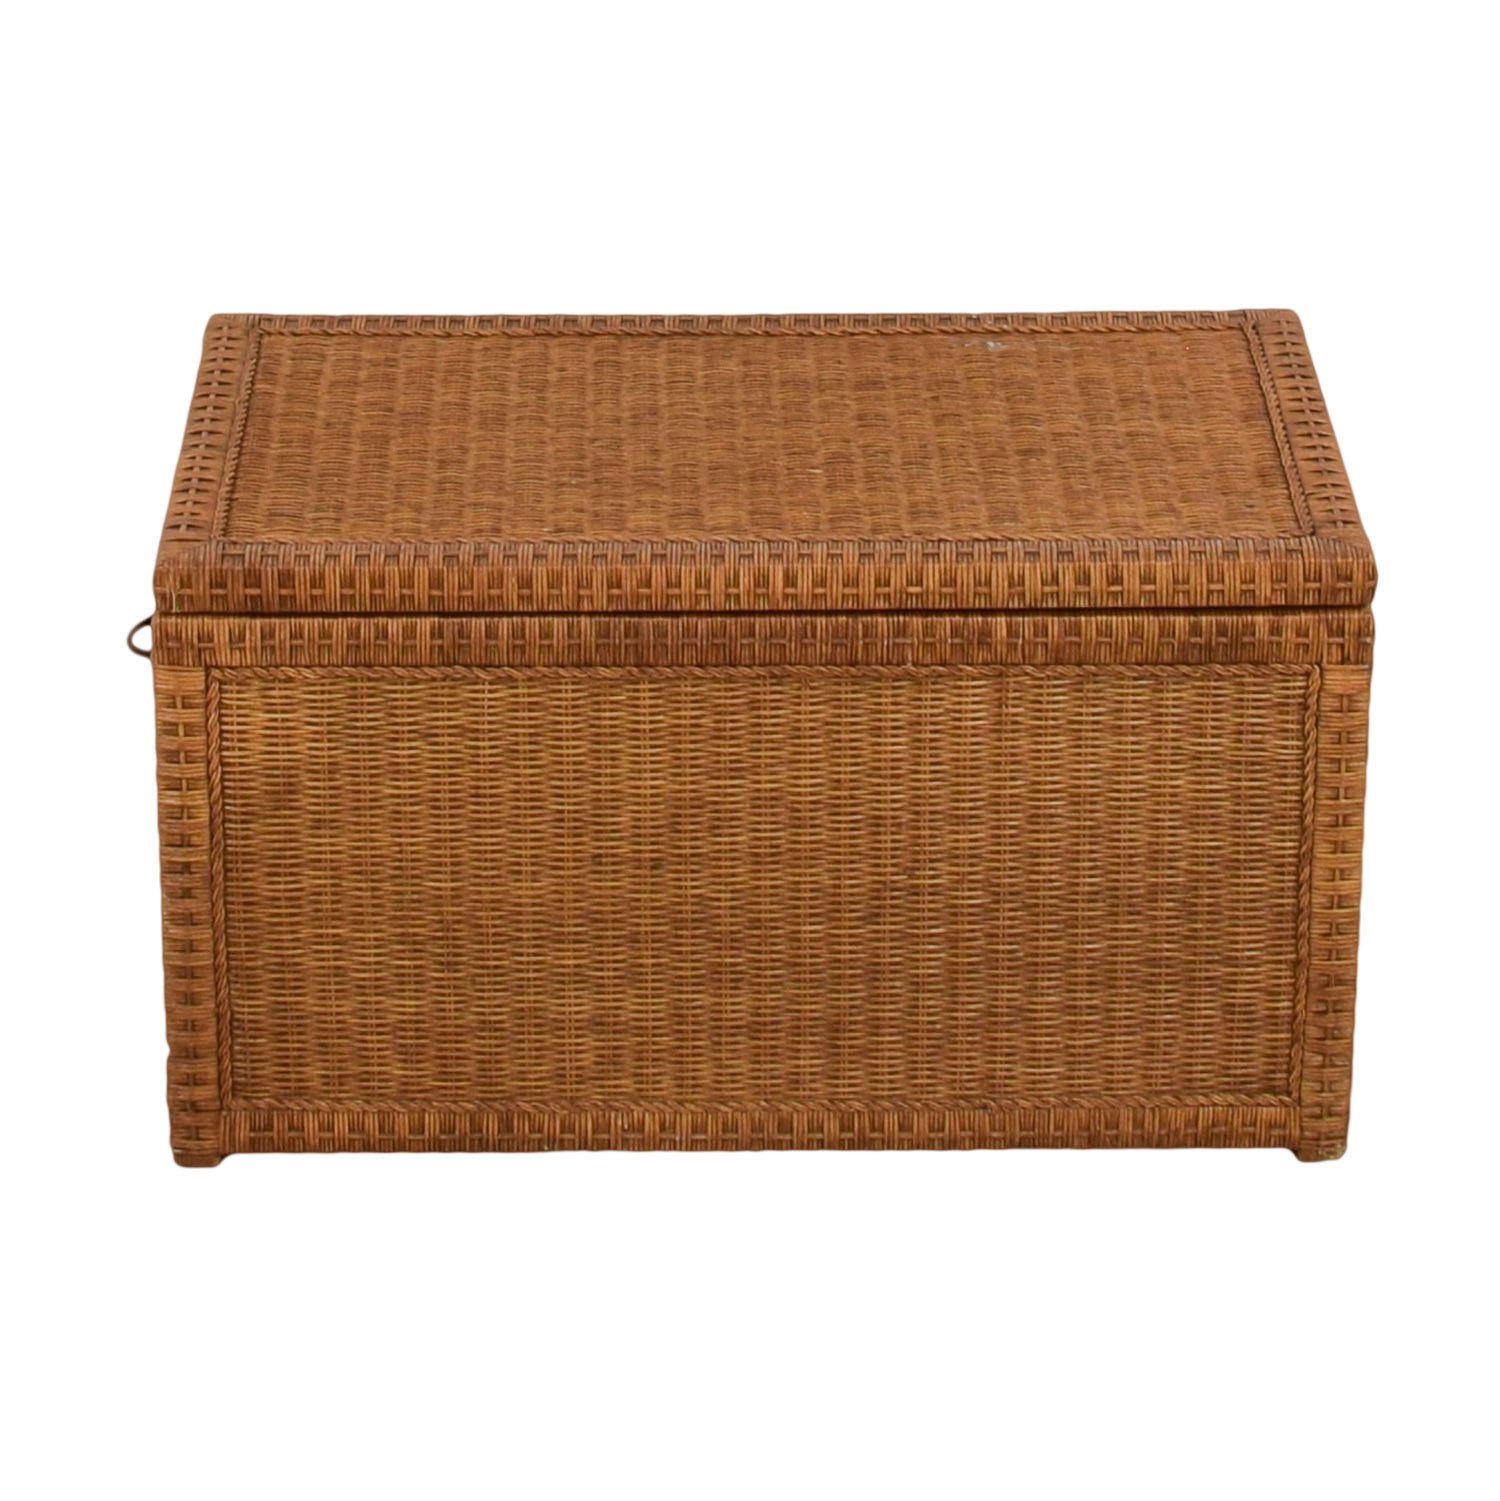 Pier One Wicker Trunk / Trunks